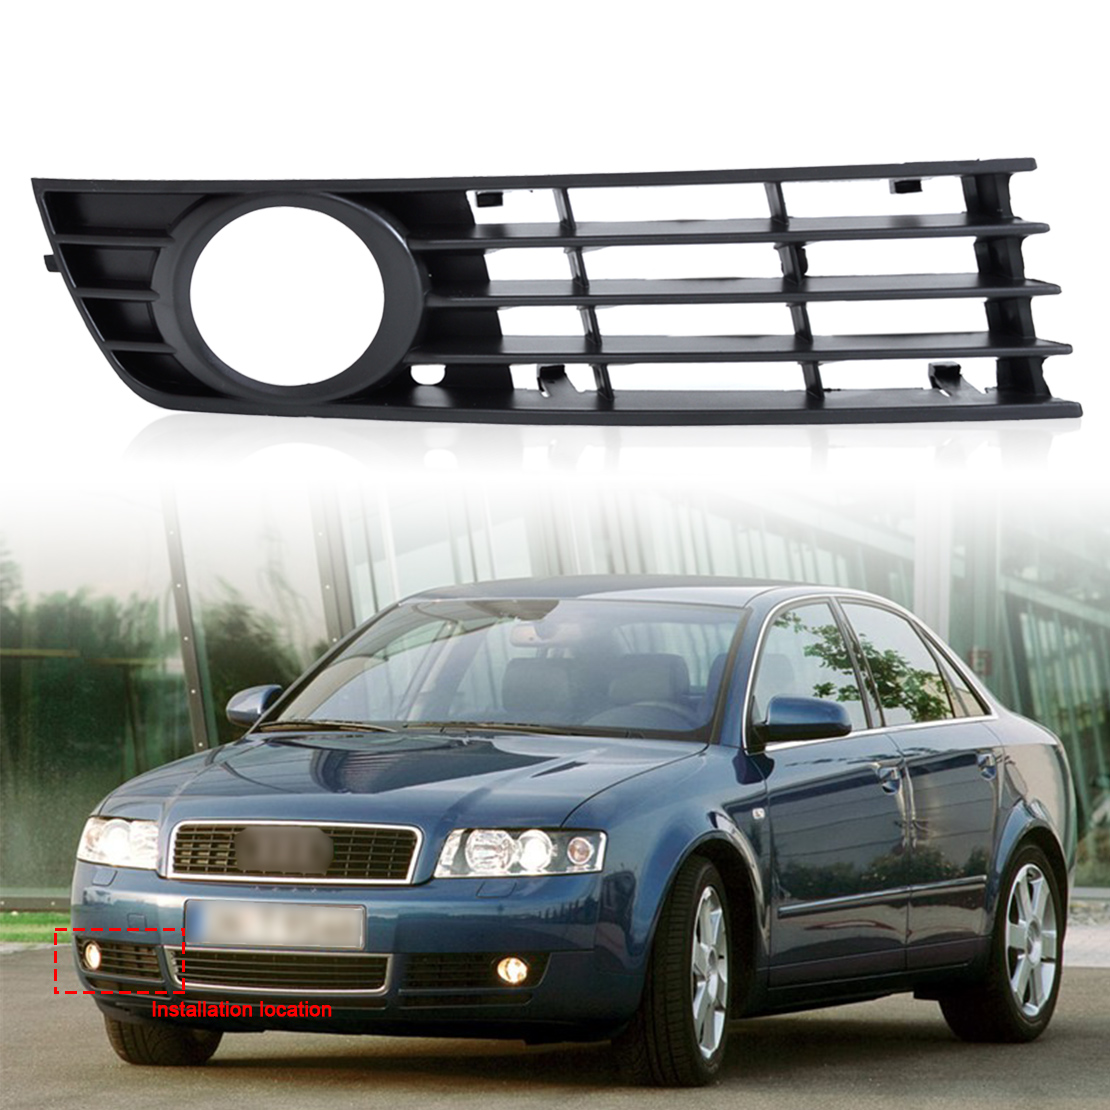 DWCX 8E0807682 Front Right Insert Bumper Fog Light Grille Protective Mesh for Audi A4 B6 2002 2003 2004 2005 1 pc rh right side front fog light bumper driving lamp with cover for mazda 6 2003 2005